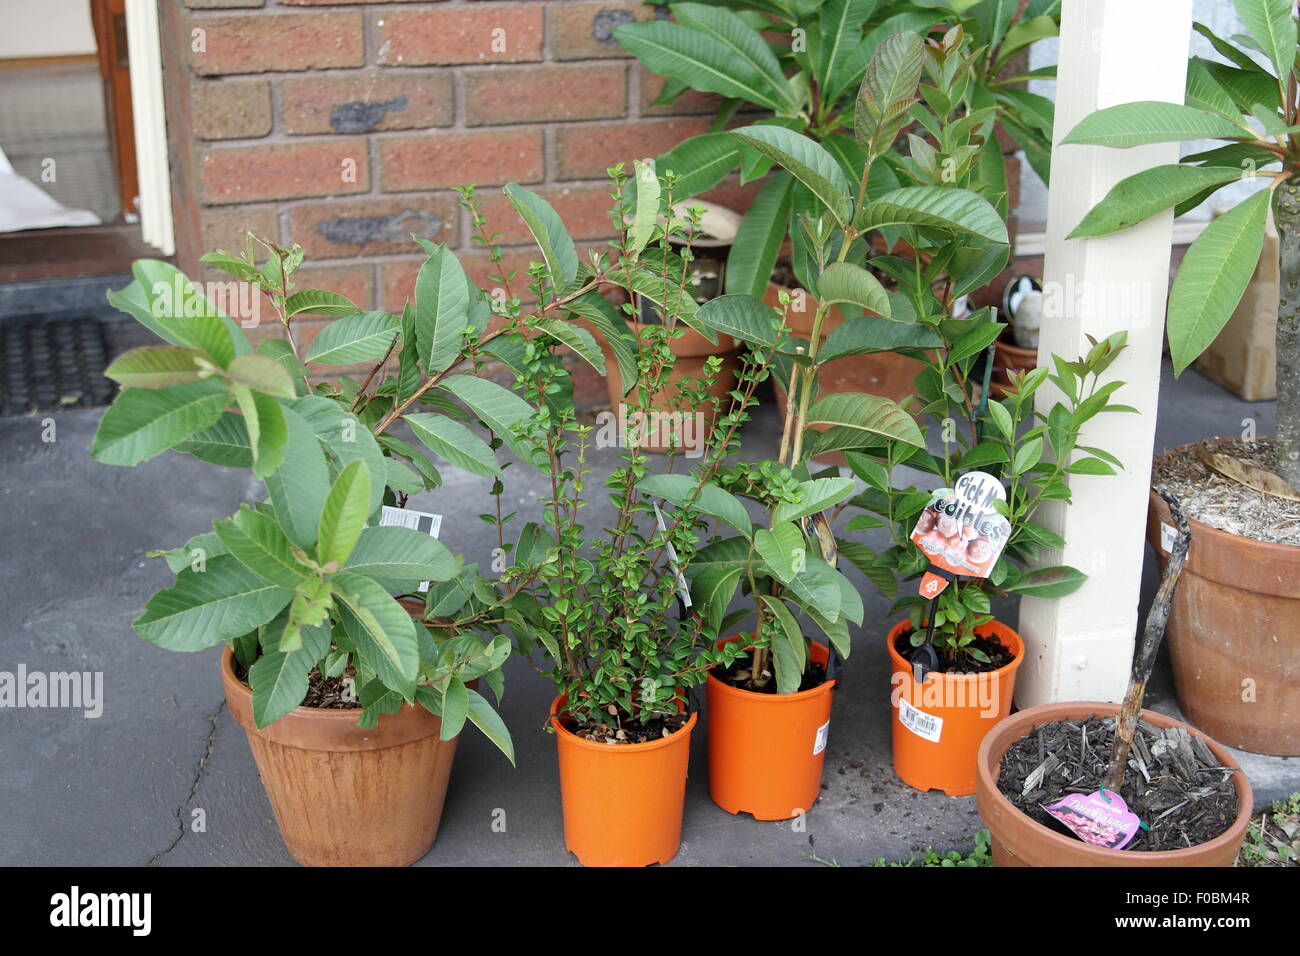 Growing guava in a pot Stock Photo: 86309127 - Alamy